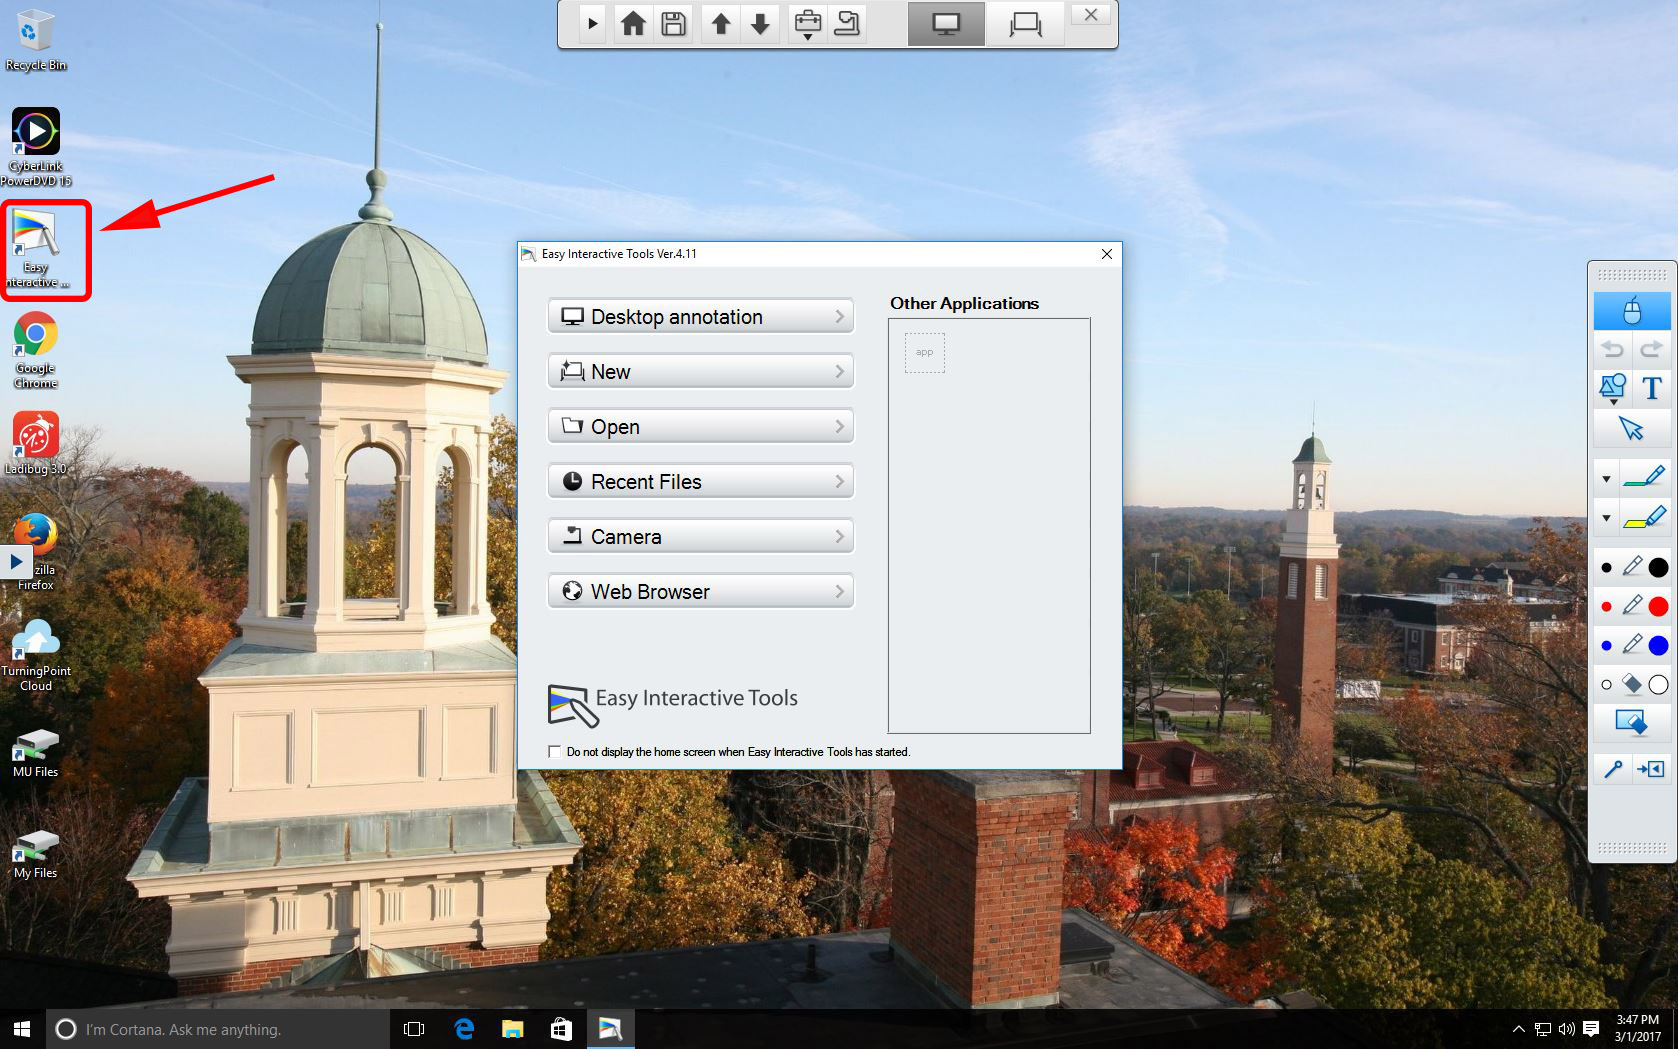 image of computer desktop with launch icon for Easy Tools software indicated